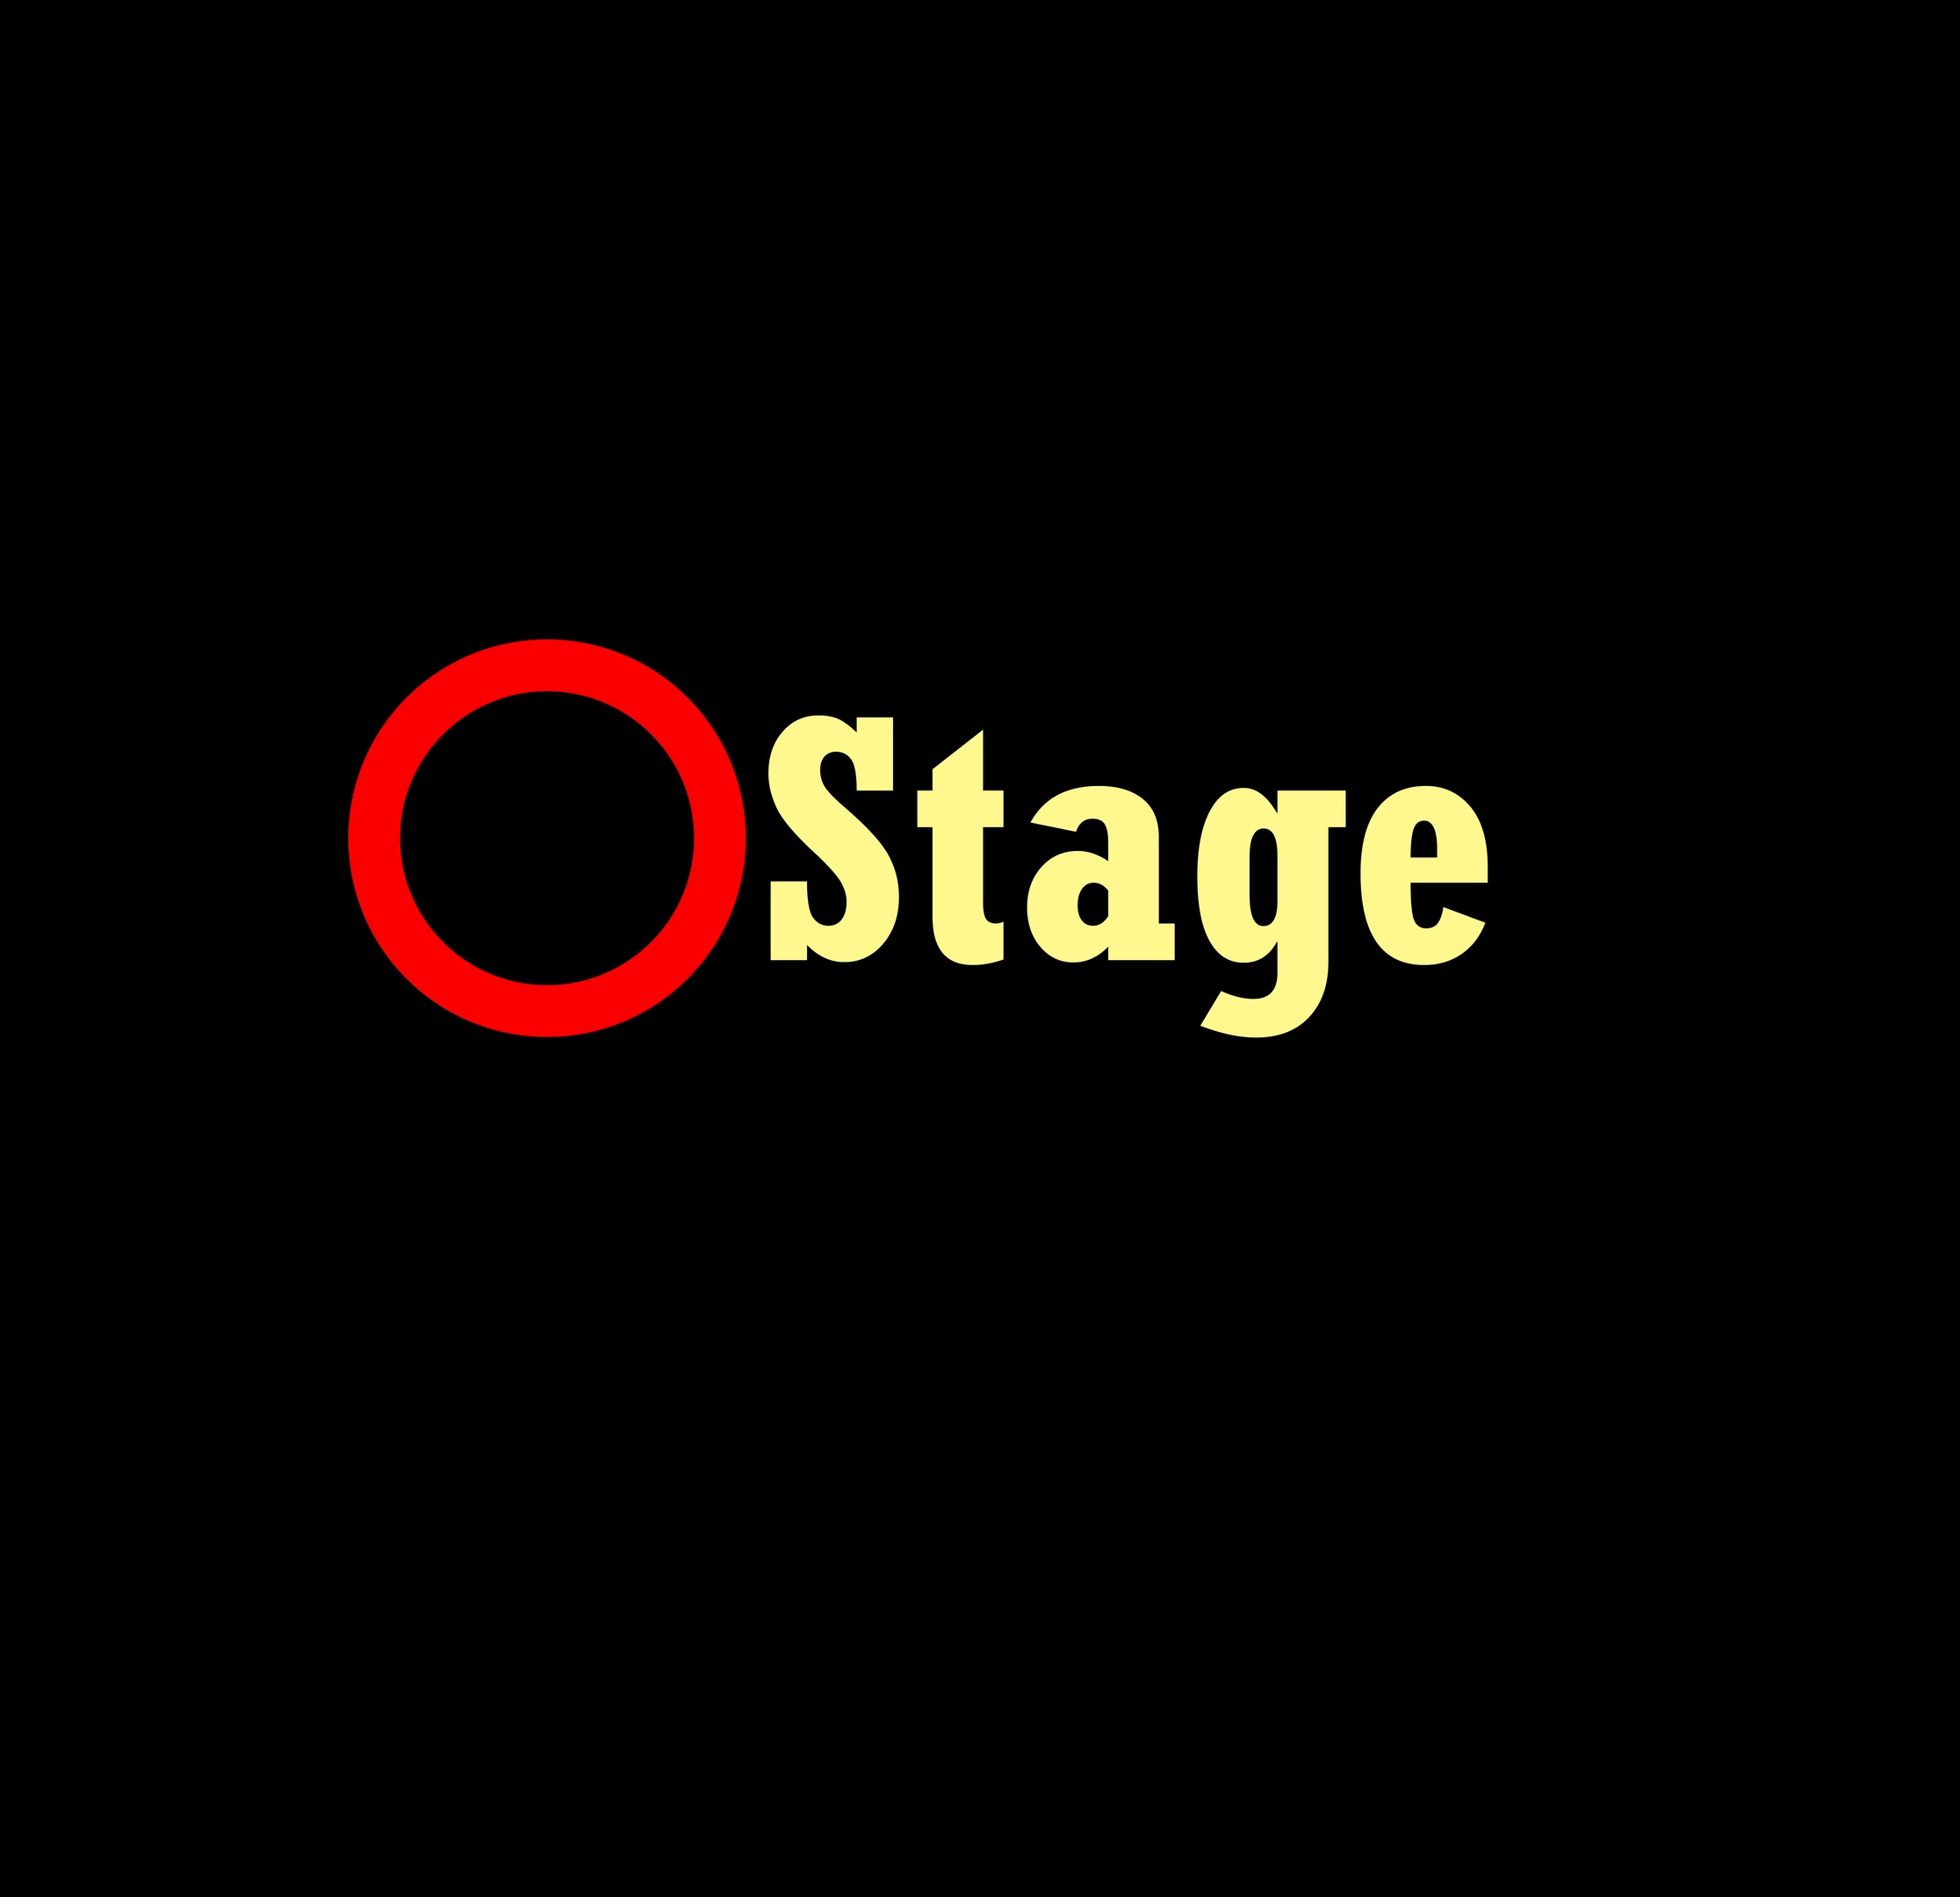 O'Stage